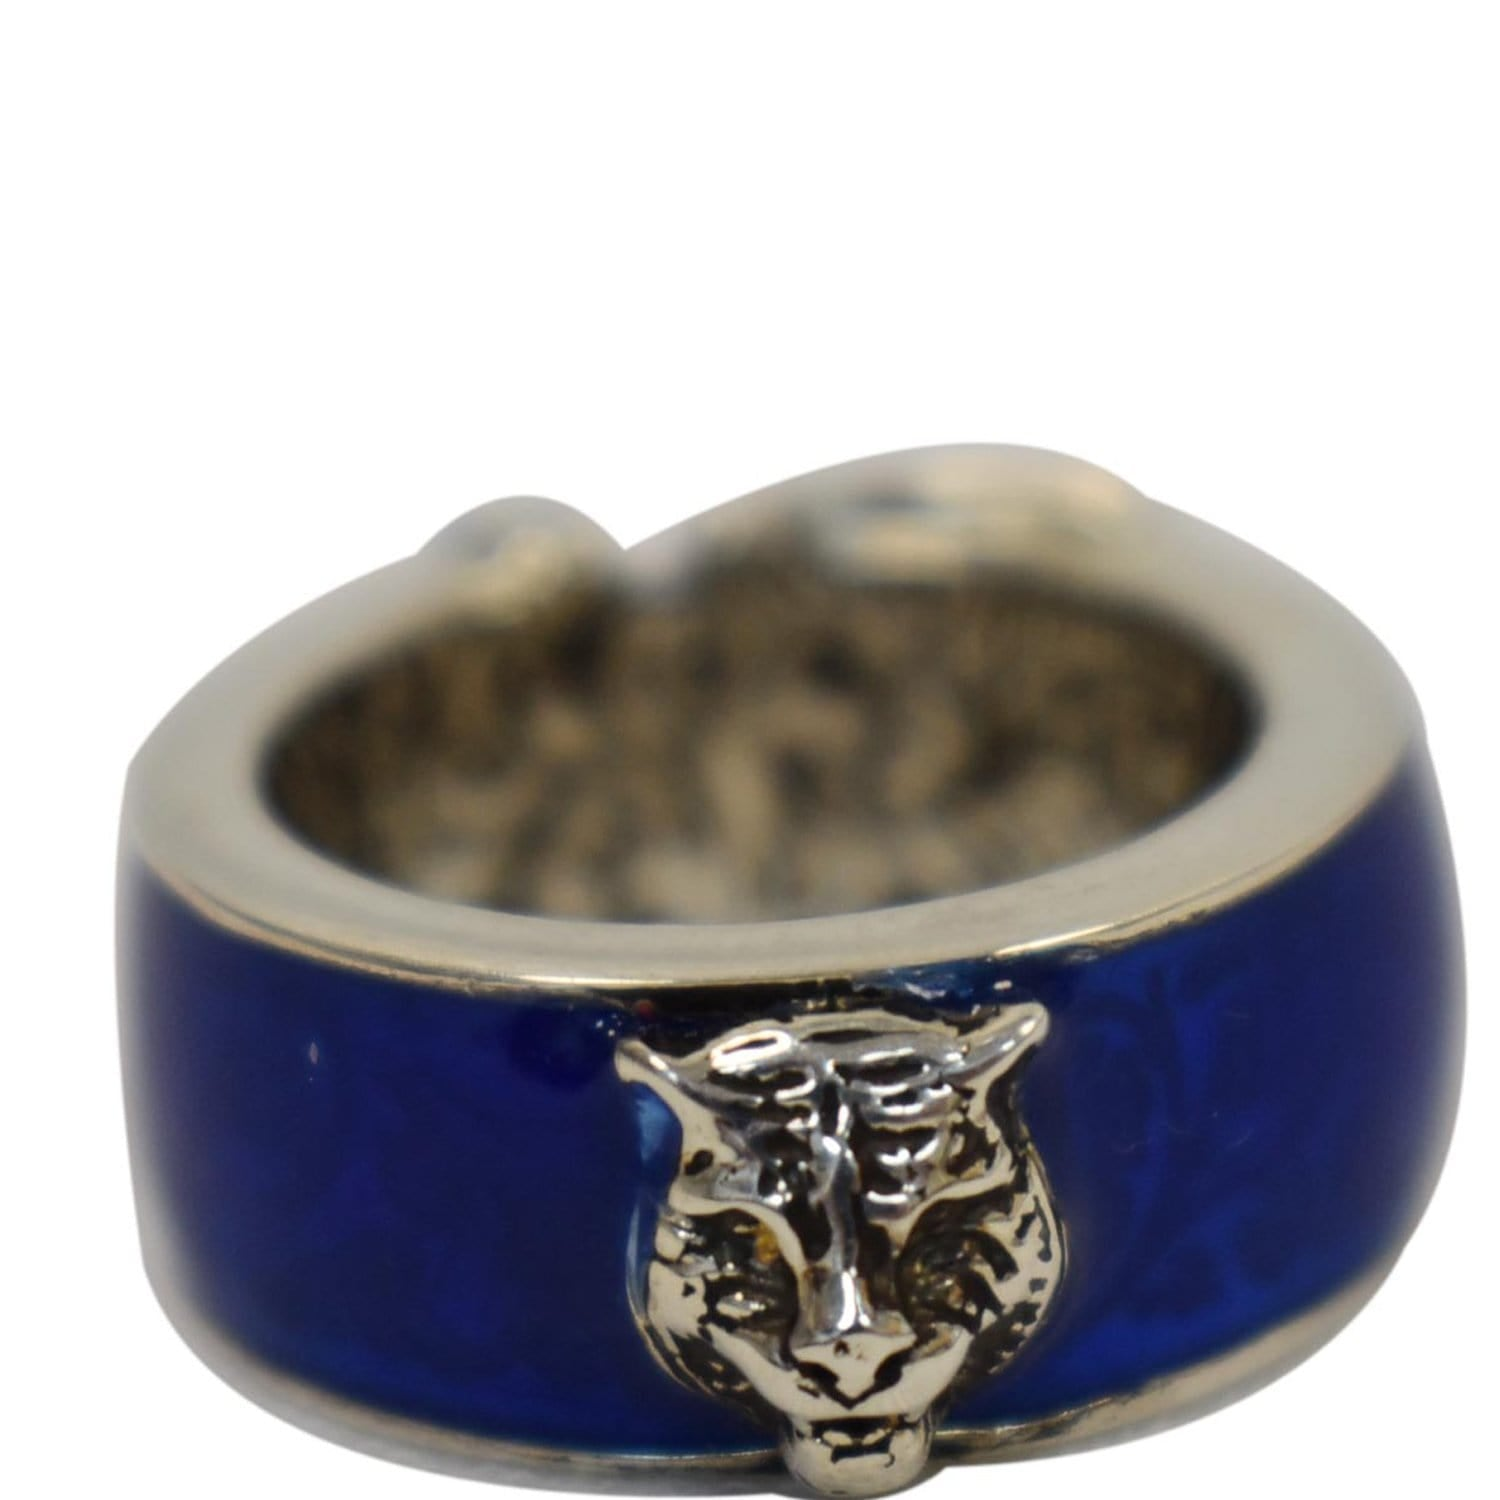 GUCCI Sterling Silver Enamel Buckle Ring Blue Size US 5